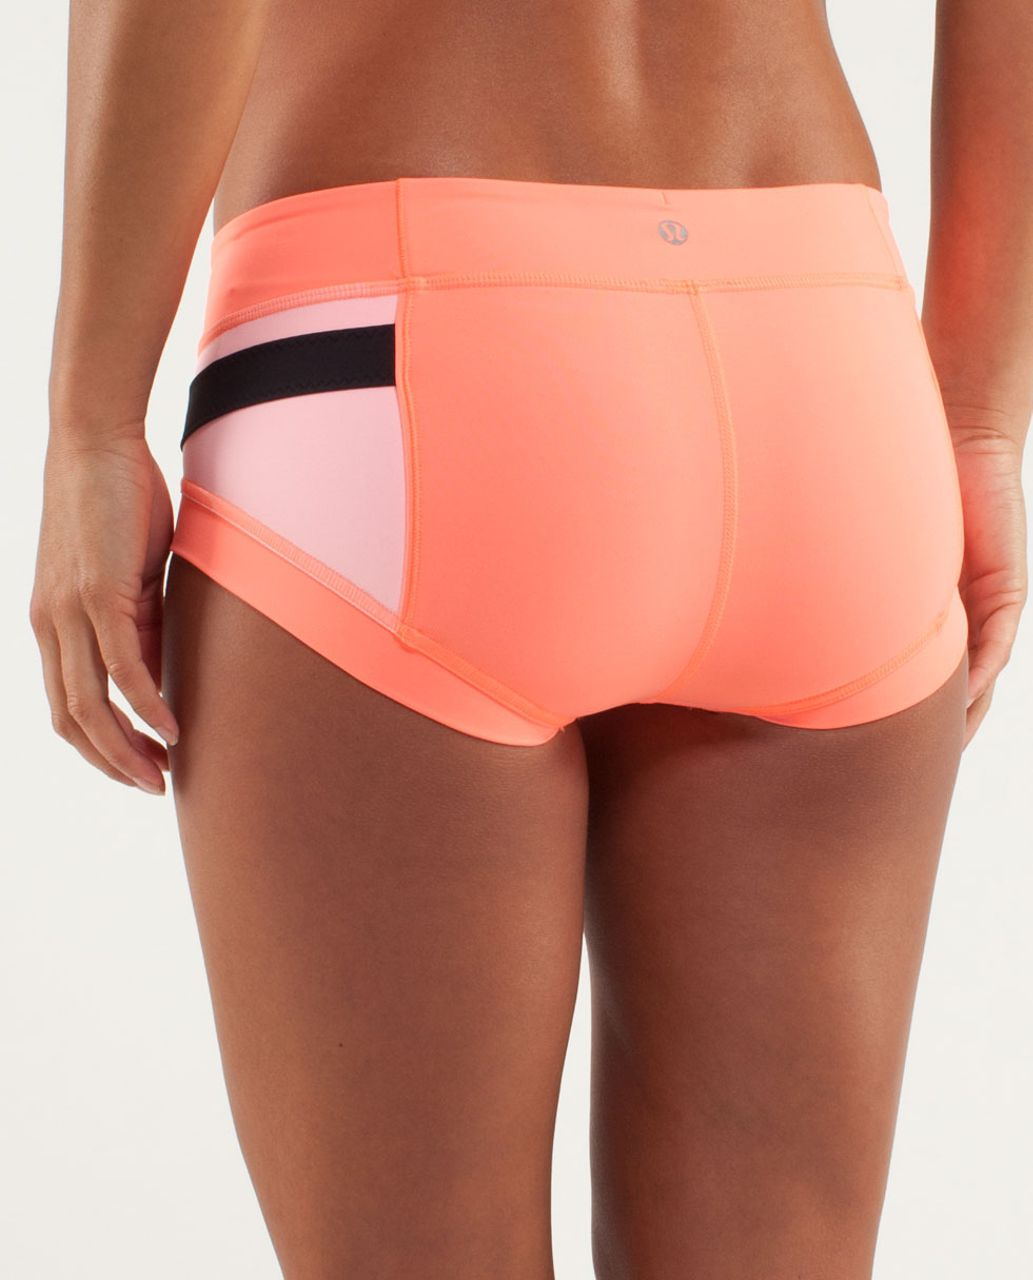 Lululemon Heat It Up Short - Pop Orange / Bleached Coral / Black